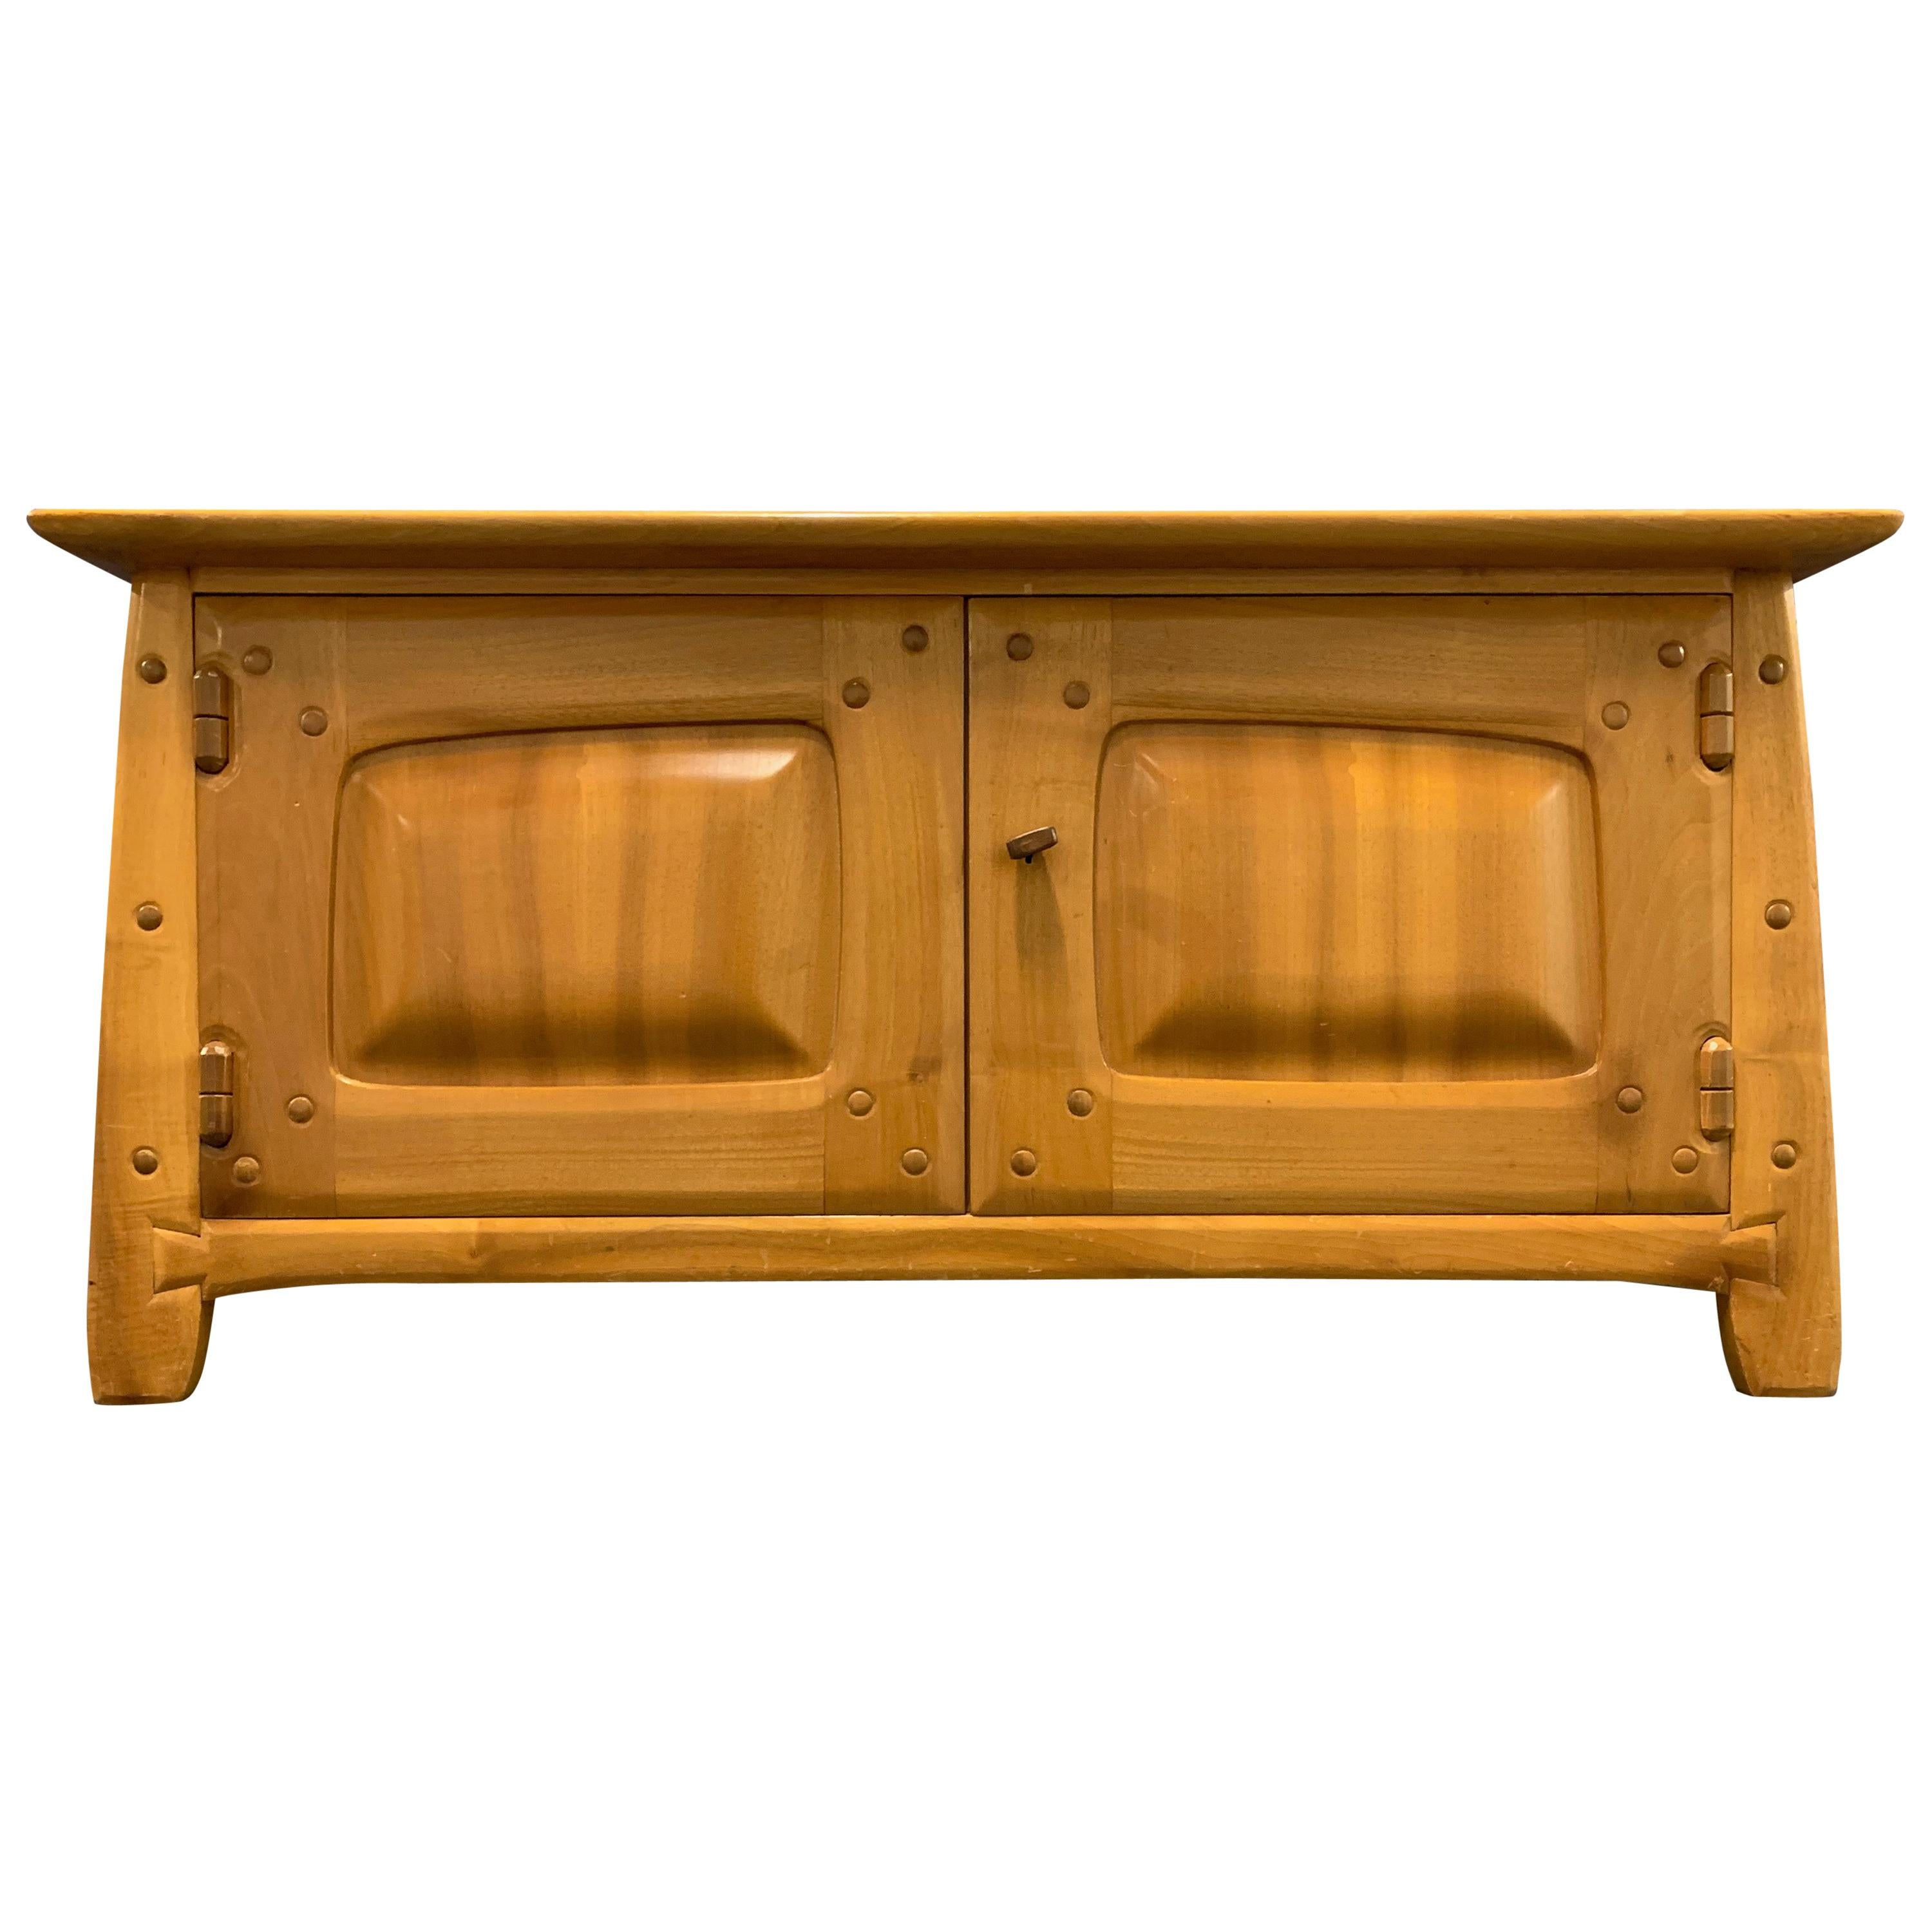 Outstanding Small Cabinet by Franz Xaver Sproll